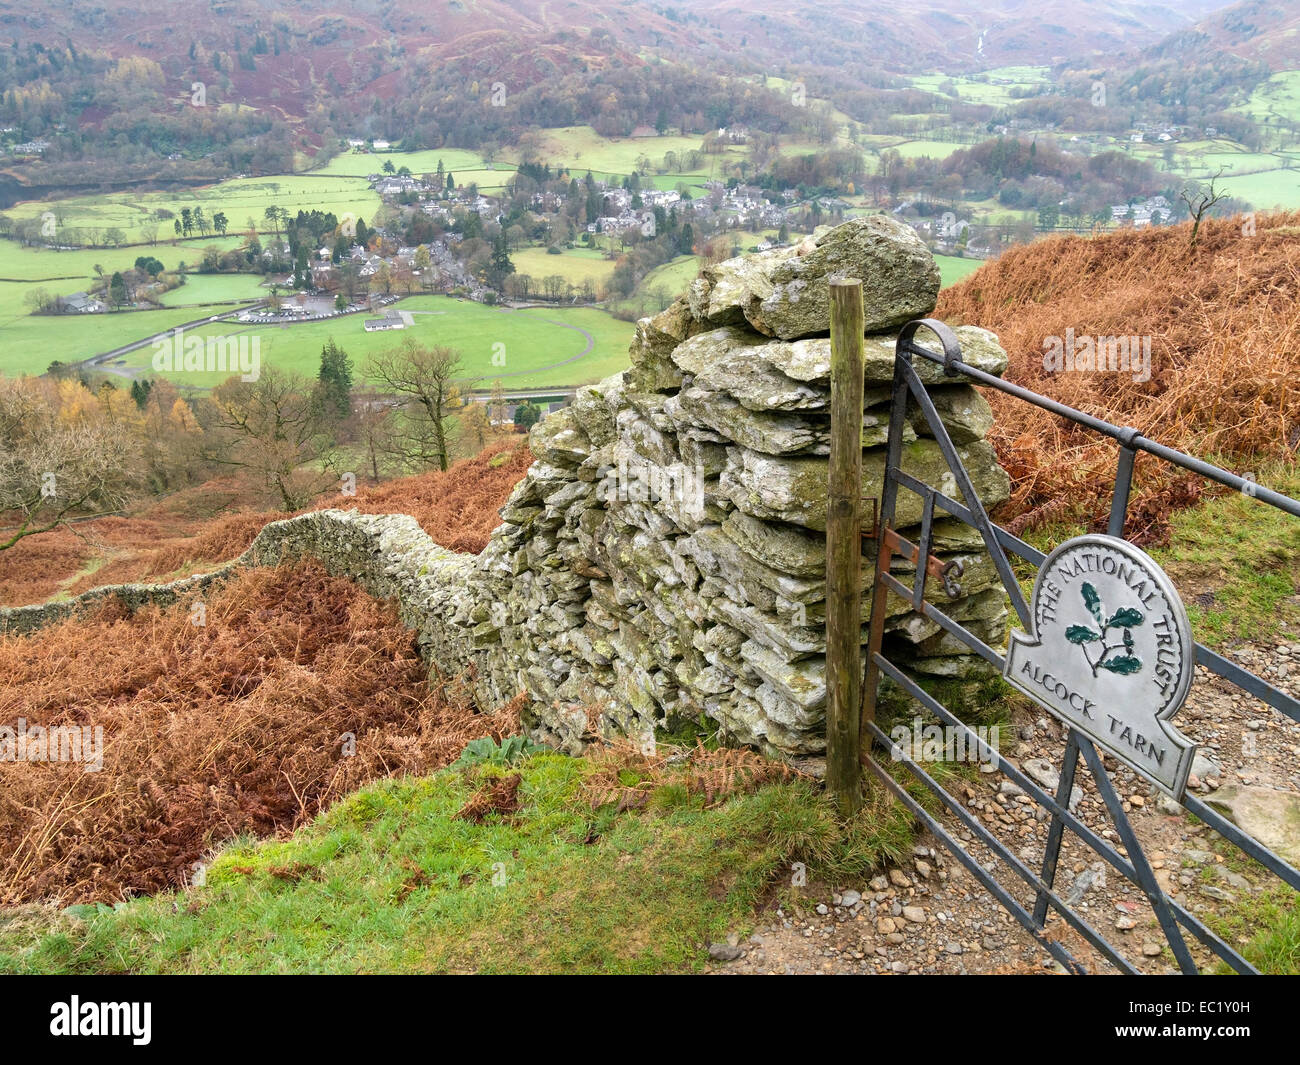 Aerial view of Grasmere Village from path to Alcock Tarn with drystone wall in foreground, Lake District, Cumbria, - Stock Image